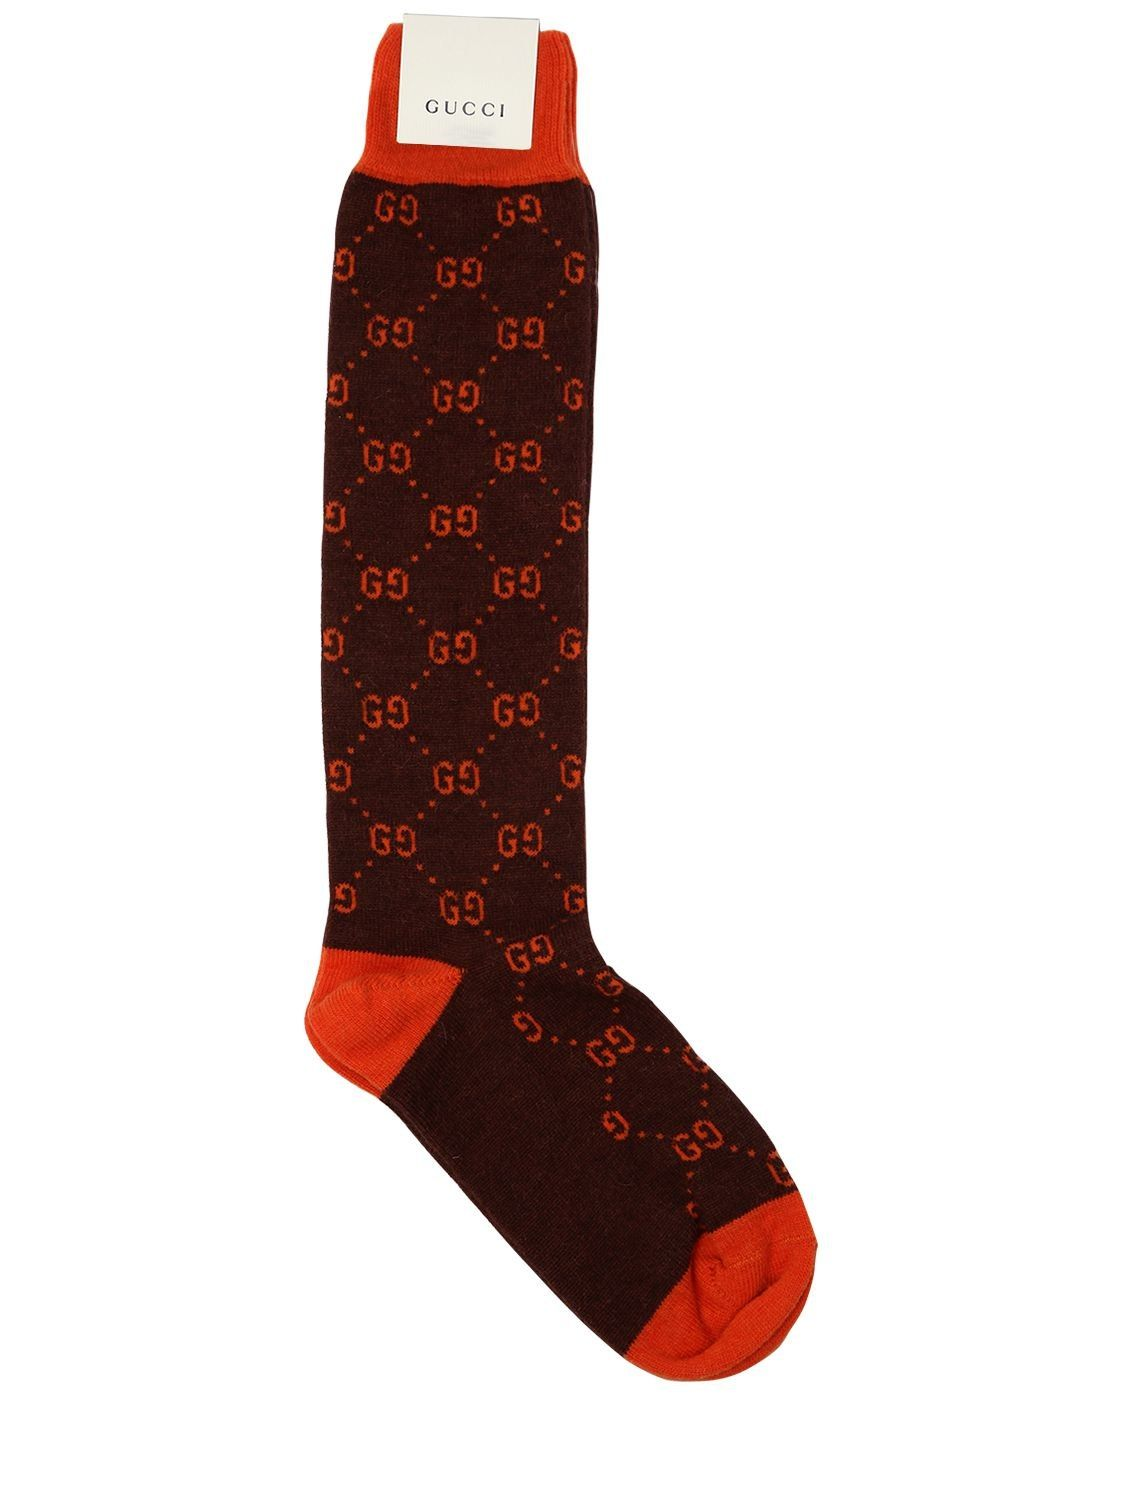 5a4aba9cf6940 Gucci Gg Supreme Wool Blend Knit Socks In Brown/Orange | Soxxx in ...